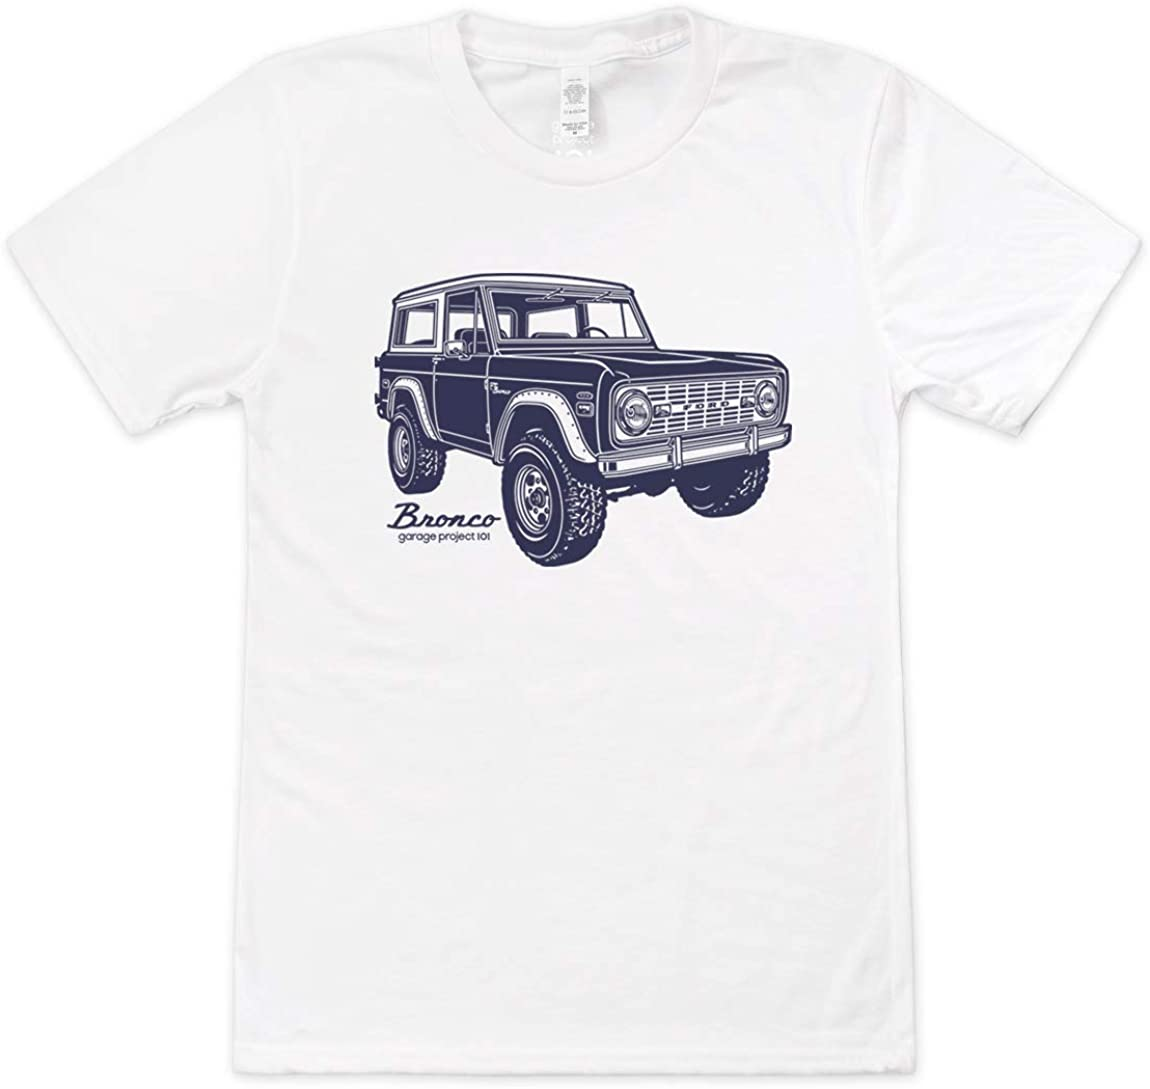 GarageProject101 Ranking TOP15 Manufacturer regenerated product Classic Bronco T-Shirt